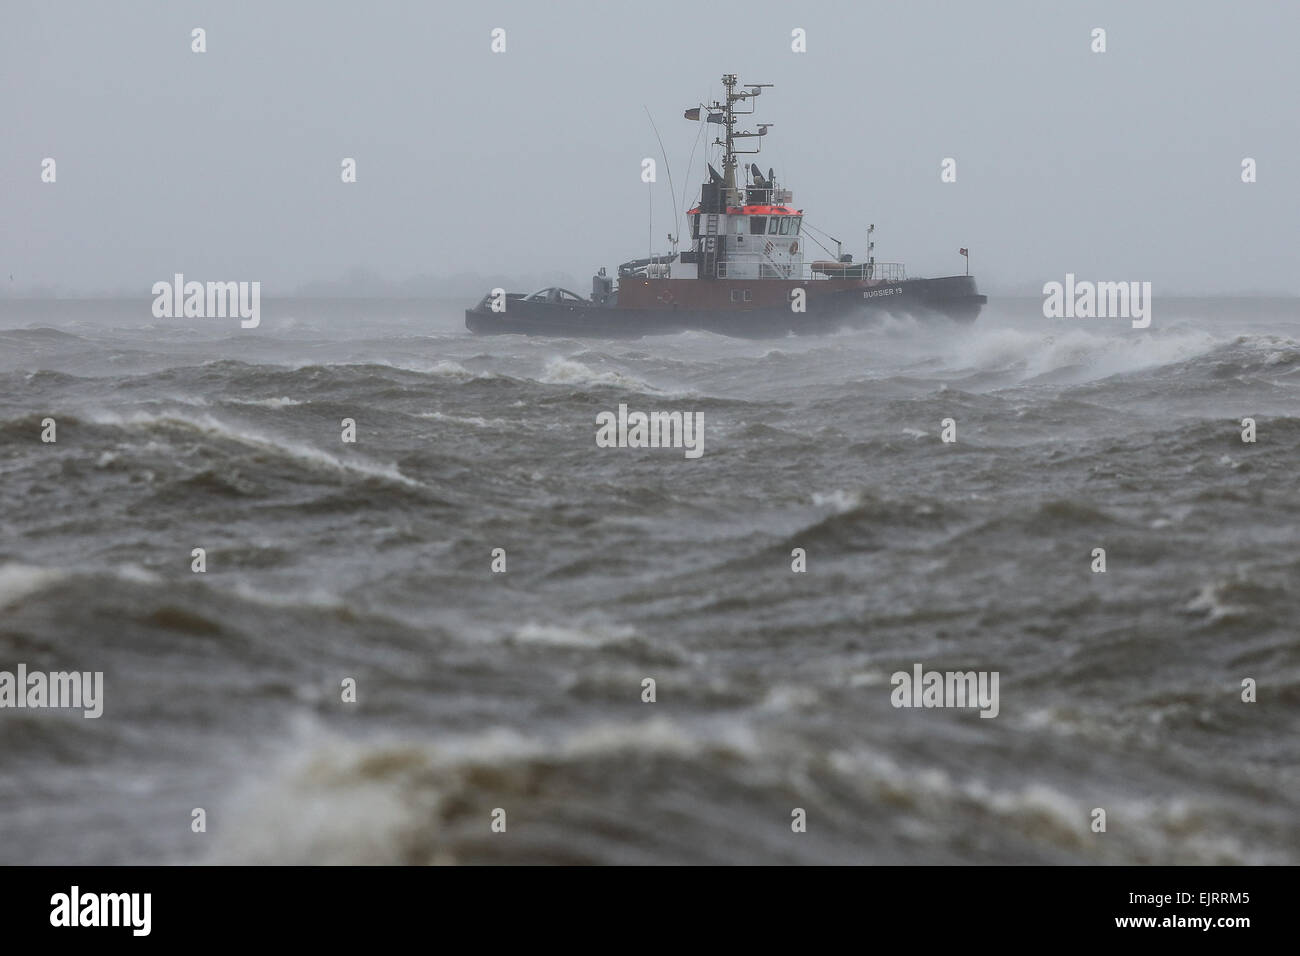 The tug boat 'Bugsier 19' is hit by storm 'Niklas' on the Elbe river in Brunsbuettel, Germany, 31 - Stock Image